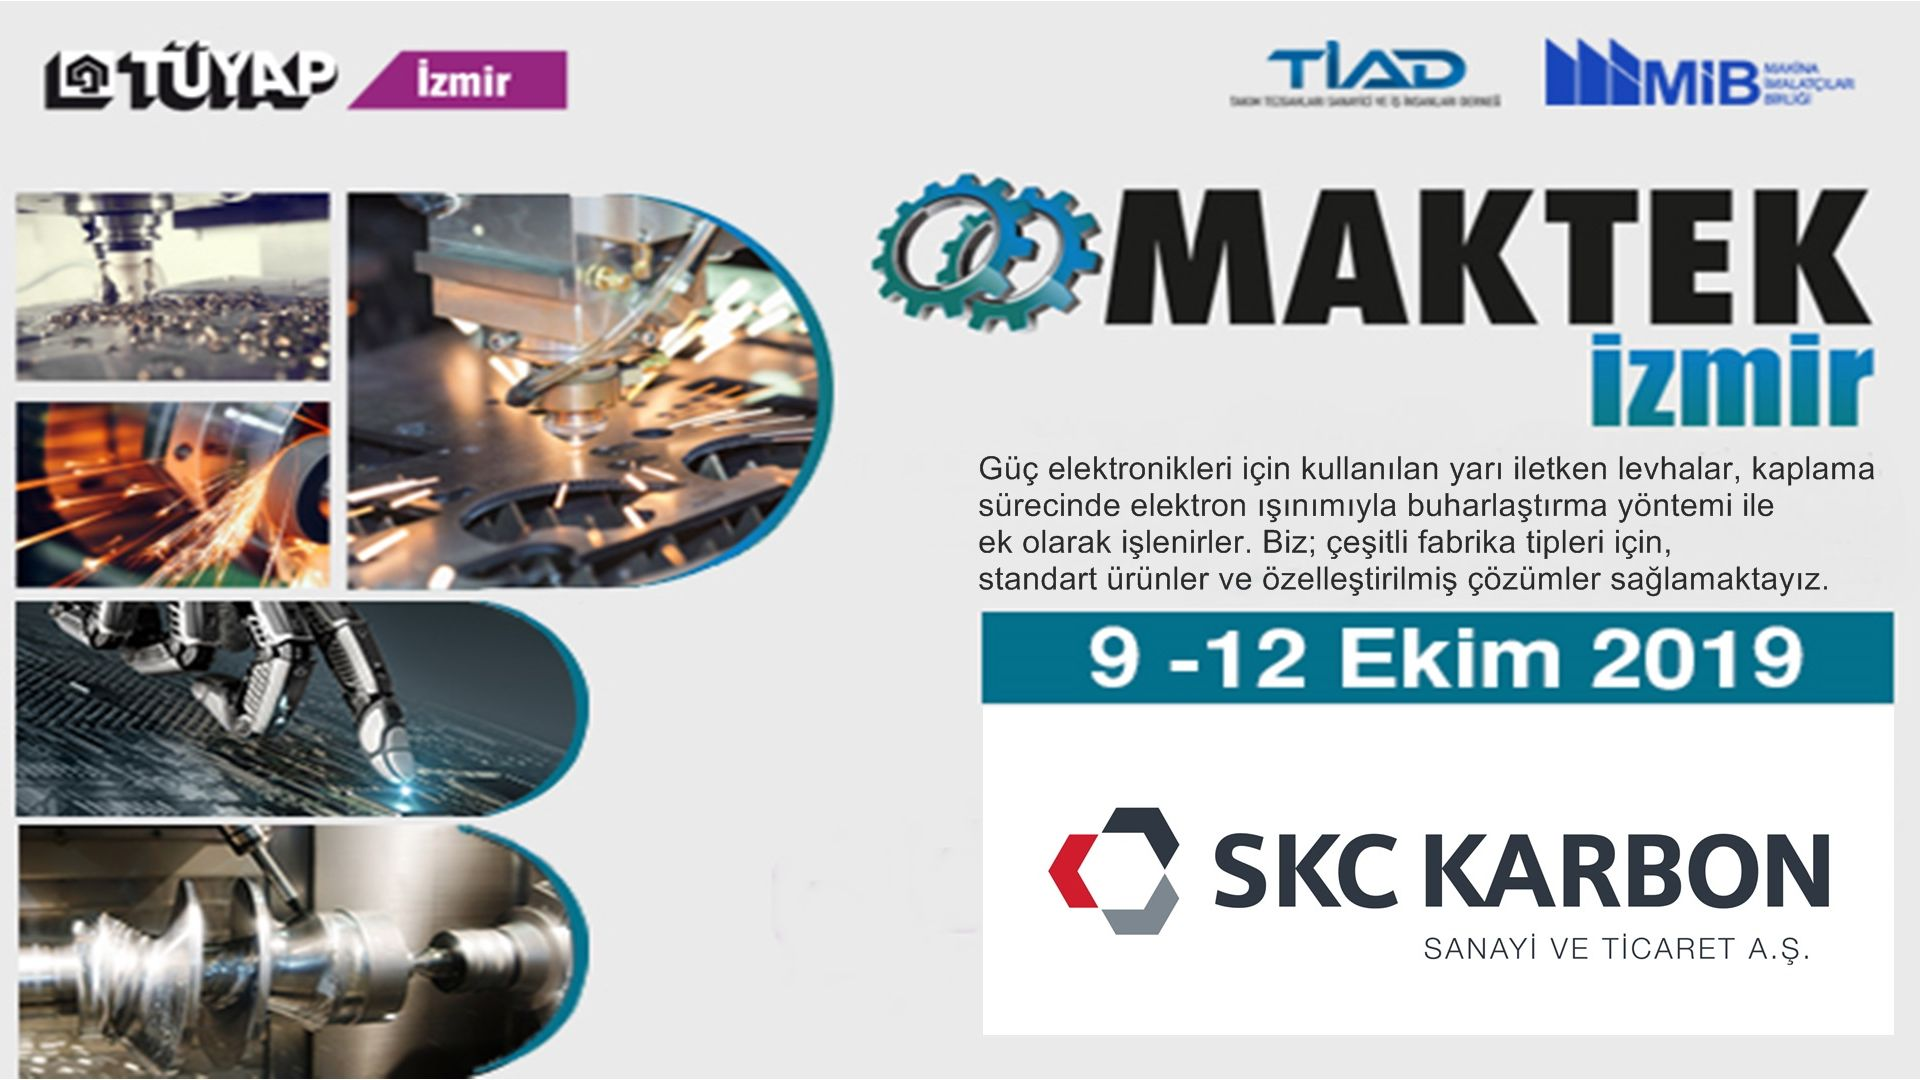 SKC will meet with the machinery sector at Maktek Izmir Fair